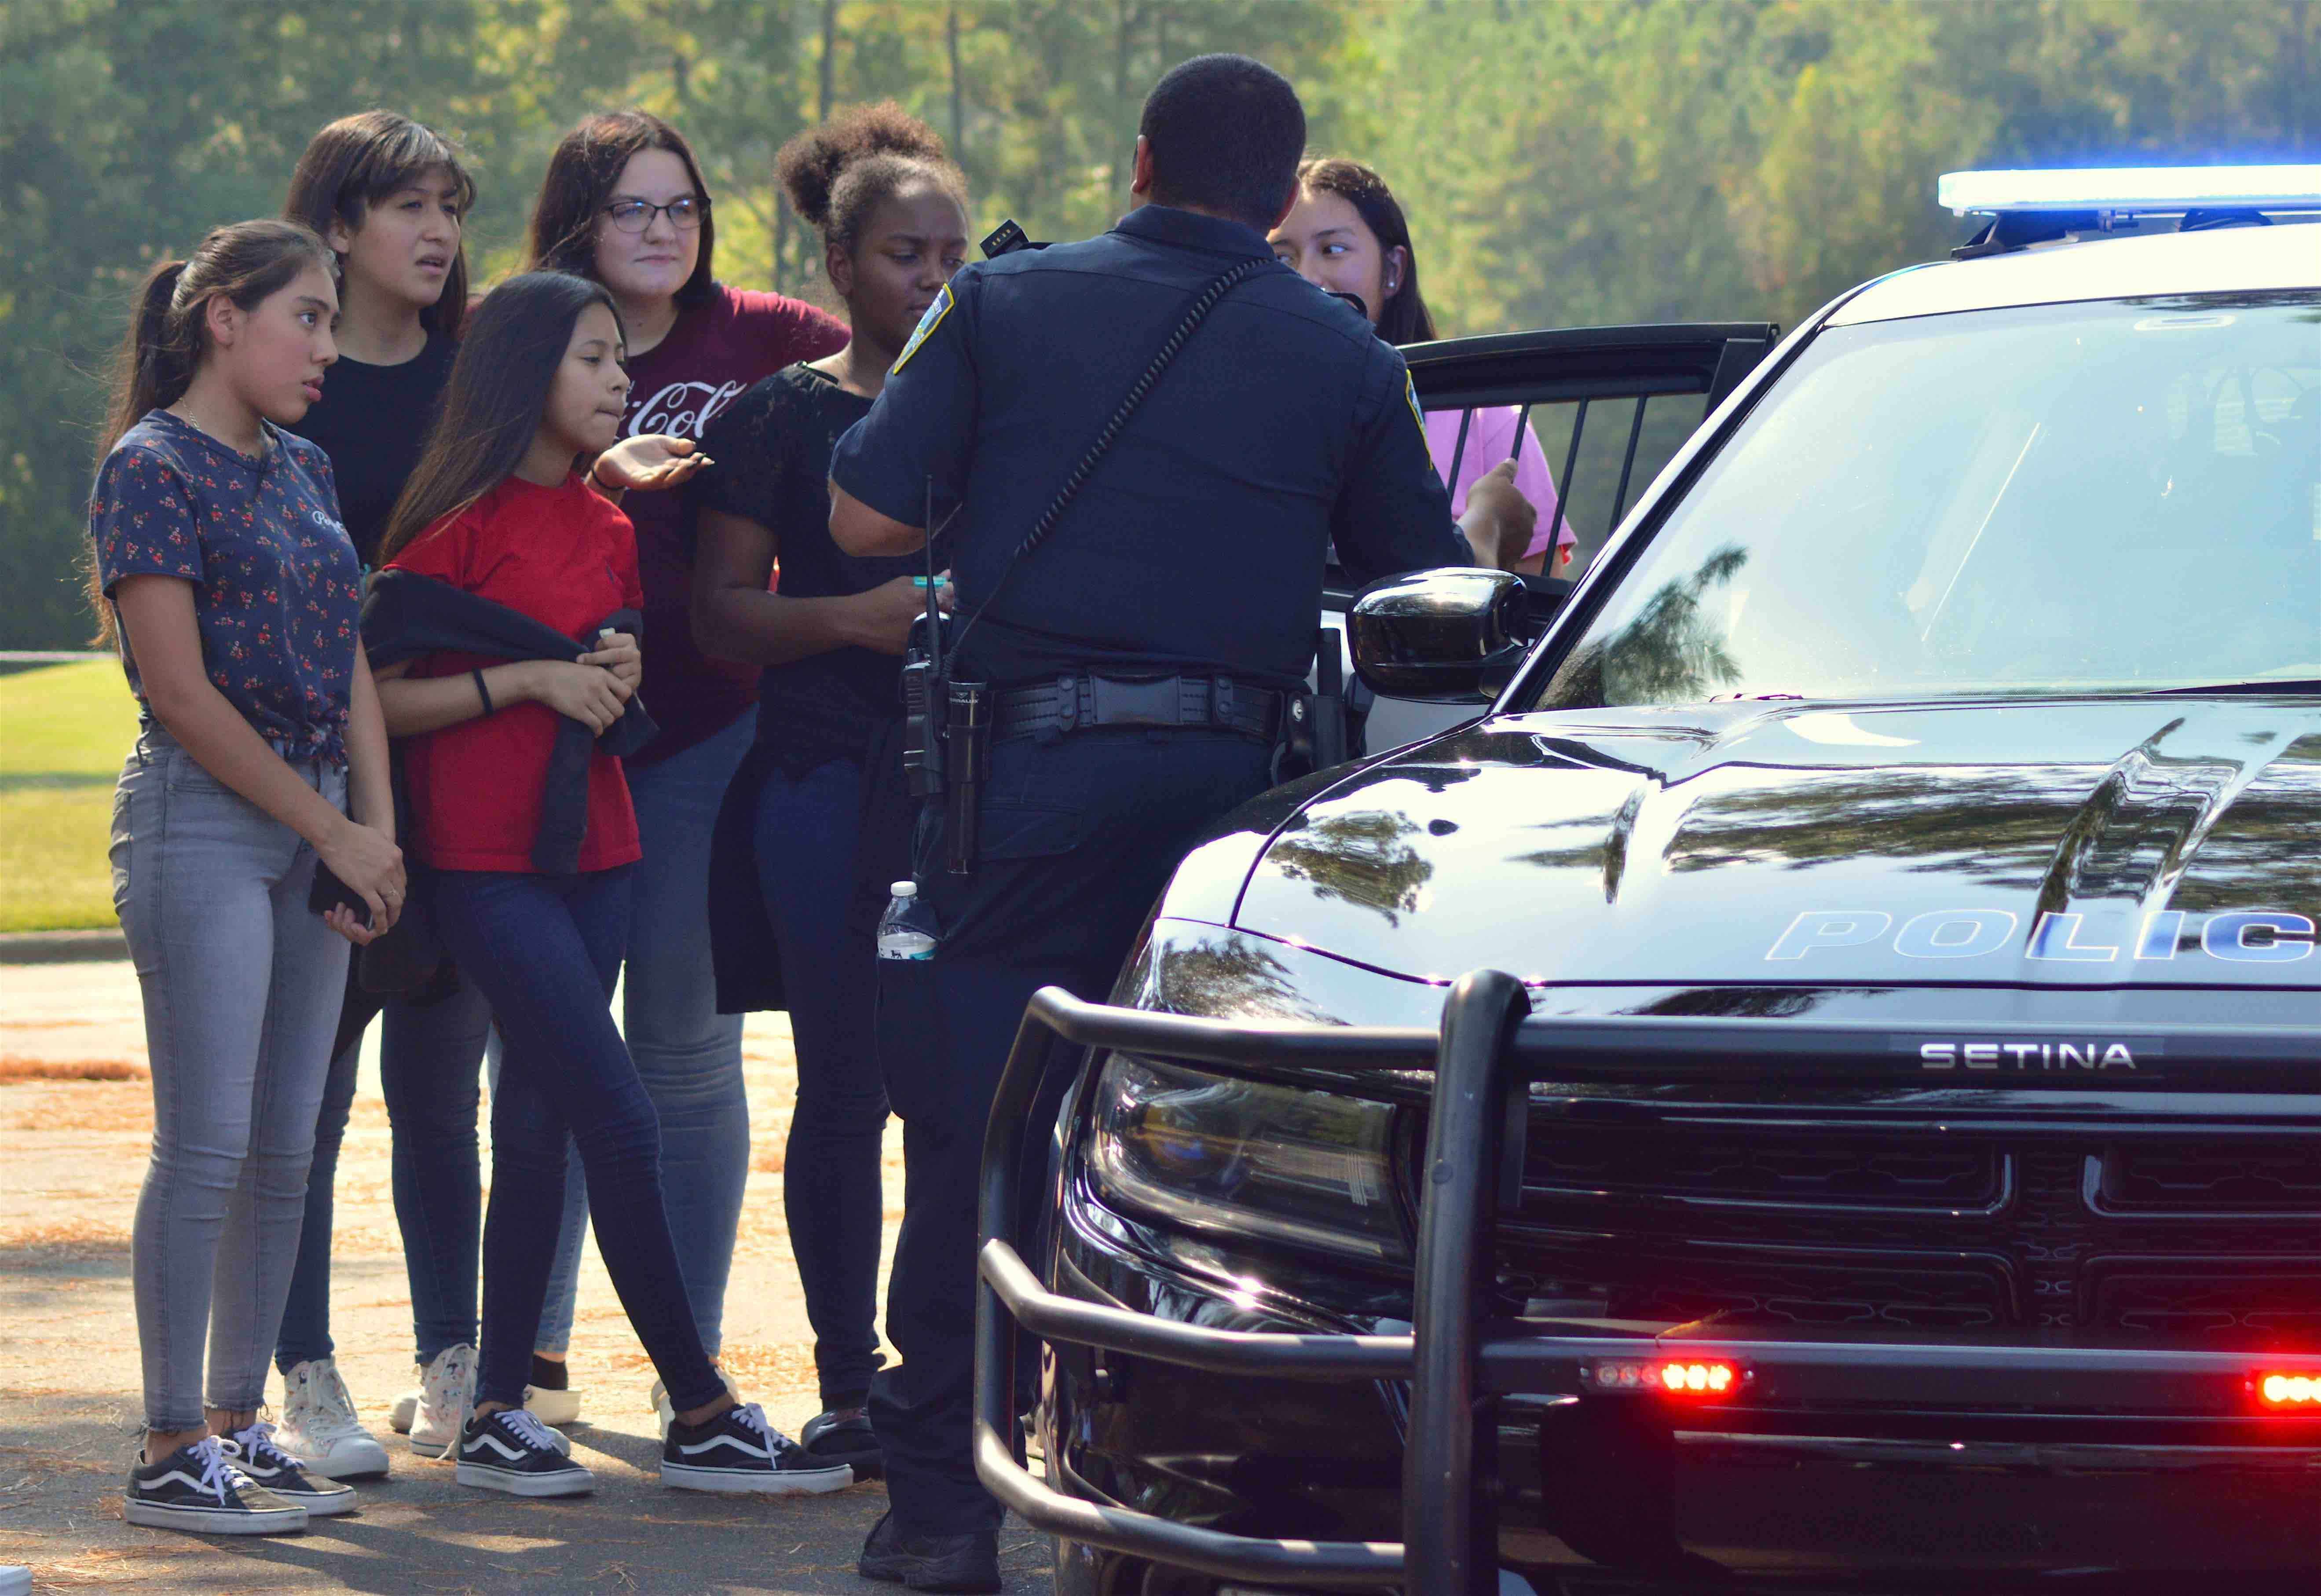 Students meeting with Butner Public Safety